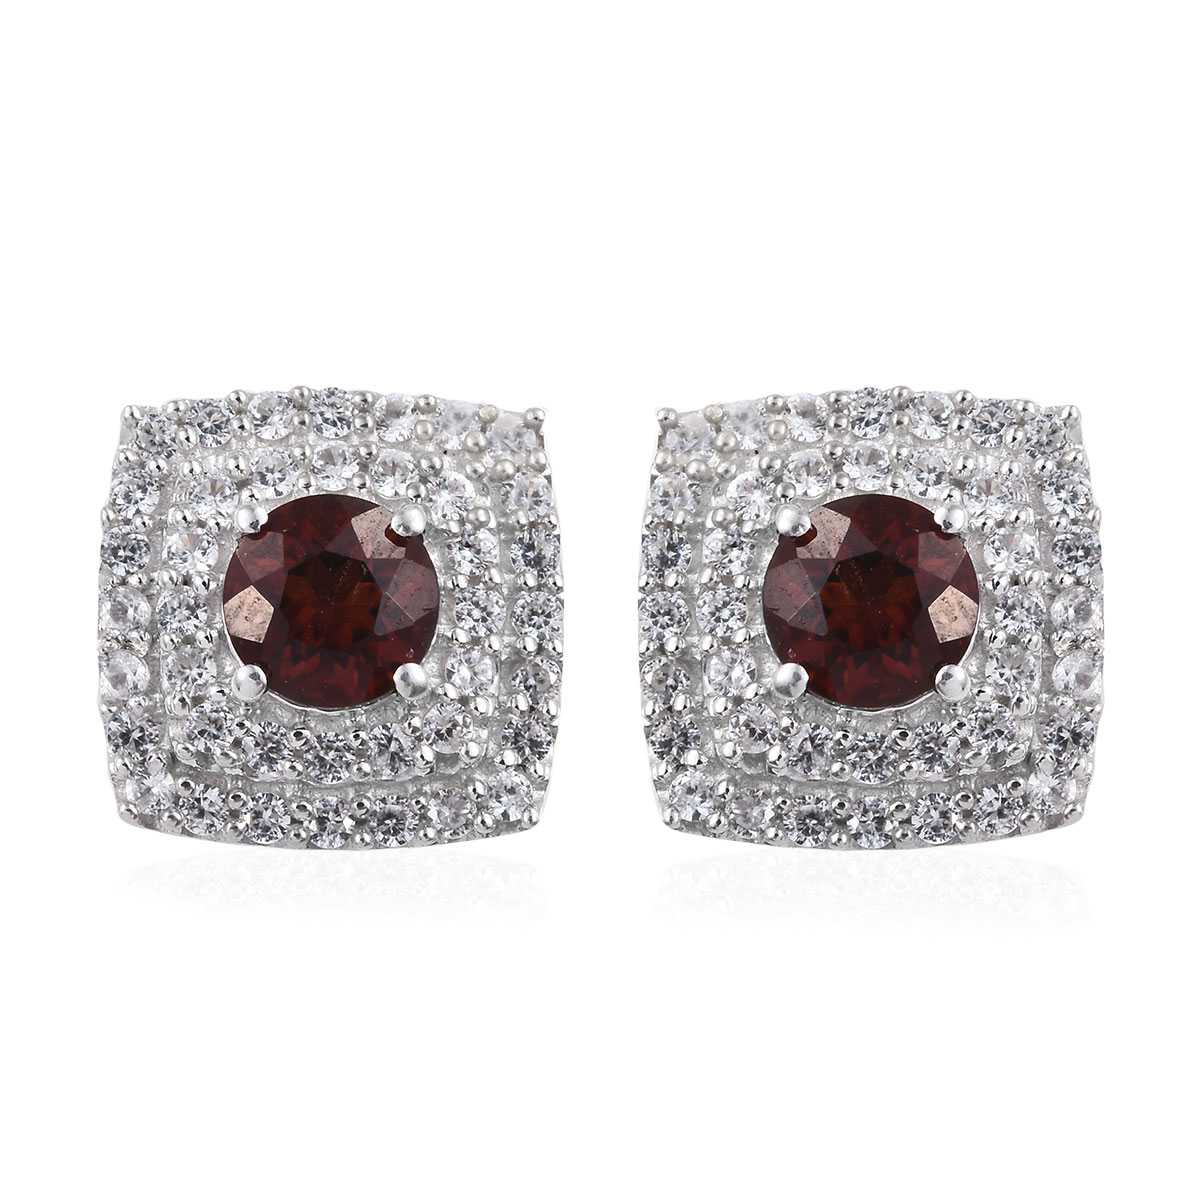 Red Citrine, Zircon Stud Earrings in Platinum Over Sterling Silver 2.95 ctw